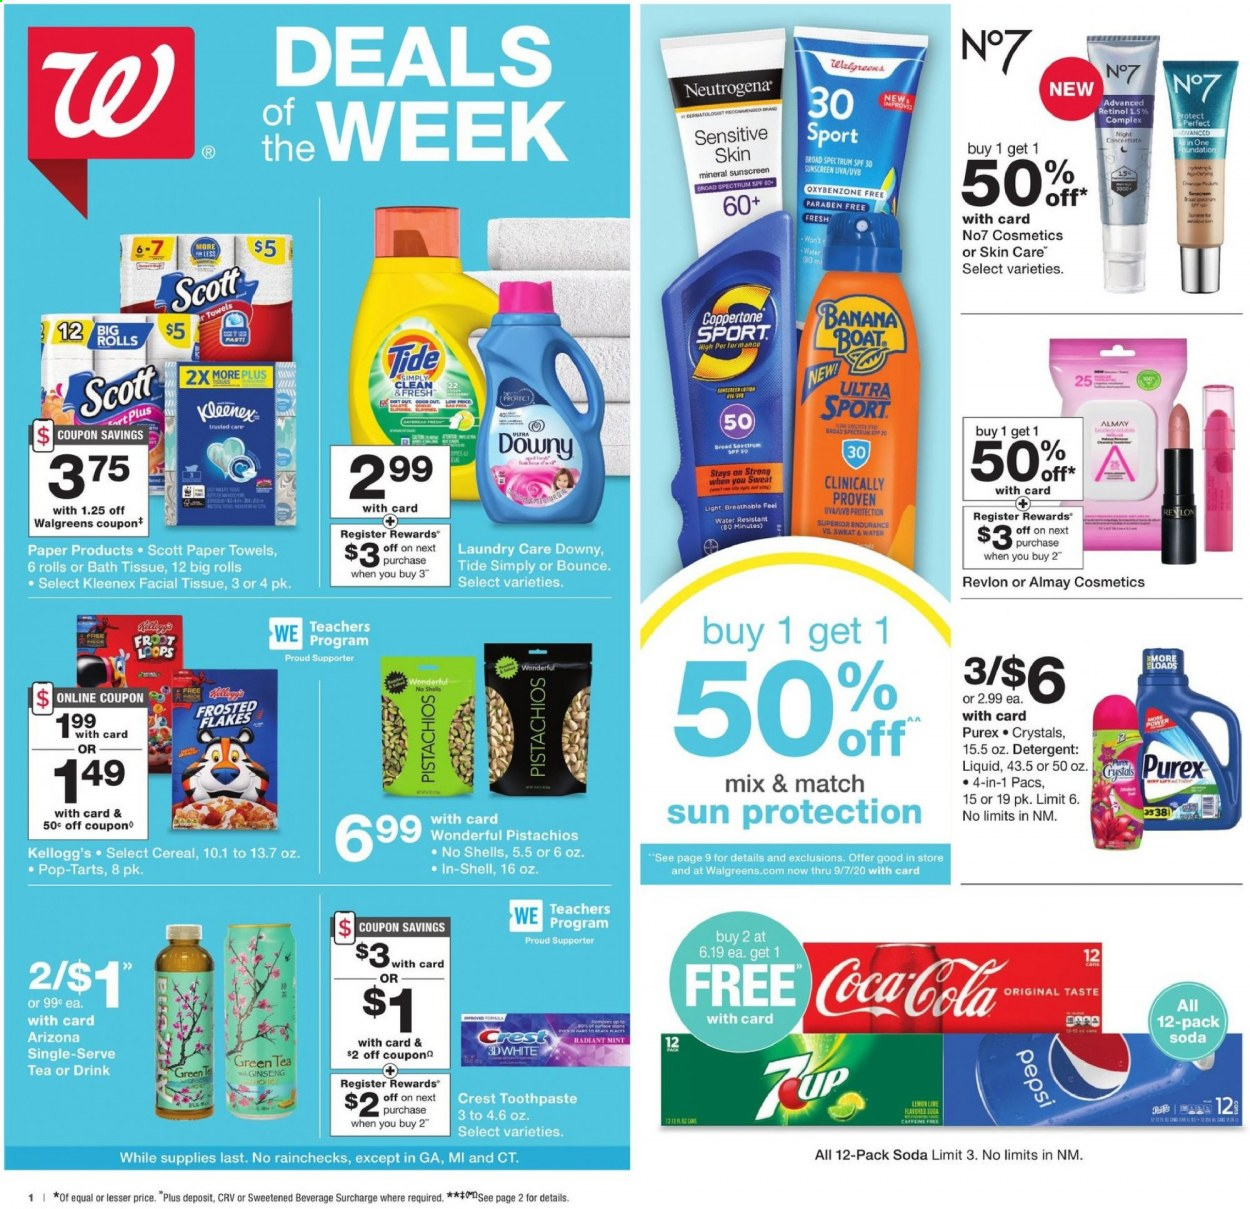 Walgreens Flyer - 07.26.2020 - 08.01.2020 - Sales products - almay, band, bath tissue, boat, bounce, cereals, coca-cola, crest, detergent, downy, green tea, kleenex, mint, neutrogena, revlon, scott, shell, tea, tide, paper towel, pepsi, ginseng, soda, toothpaste, cereal, cosmetics, flakes, drink, liquid, lemon, foundation, water resistant, paper towels. Page 1.